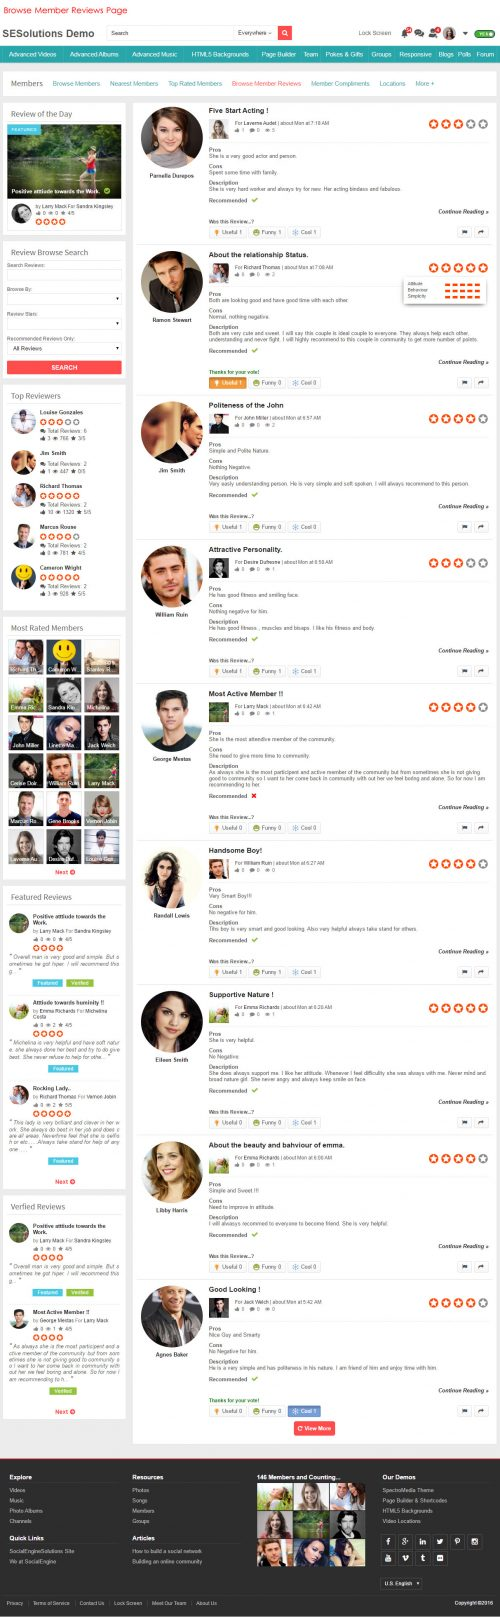 Browse Member Reviews Page